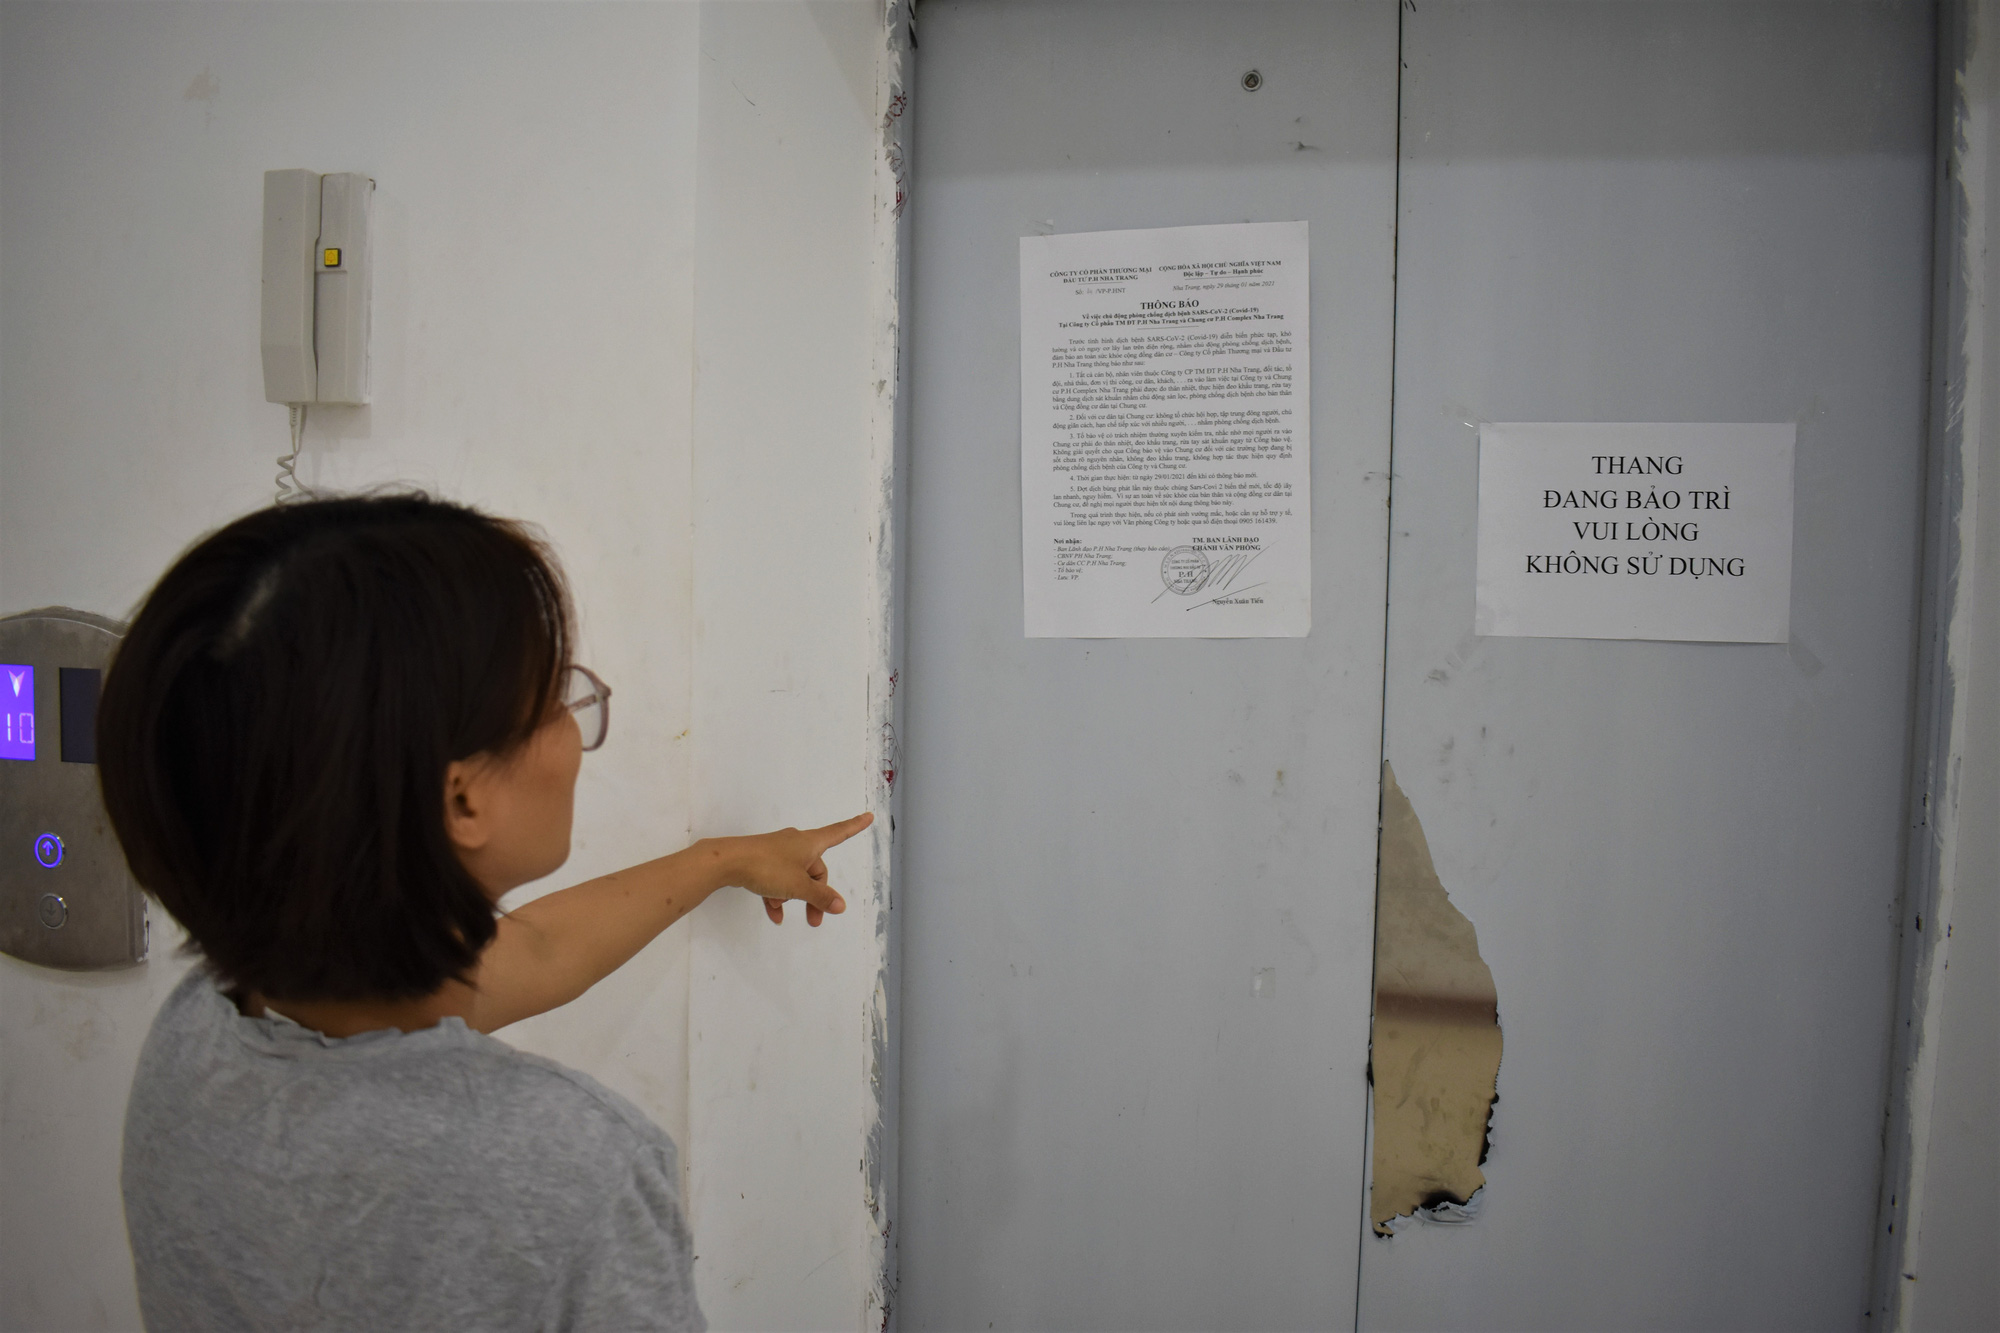 A woman points her finger at a shuttered elevator at the P.H Nha Trang apartment complex in Nha Trang City, Khanh Hoa Province, Vietnam. Photo: Minh Chien / Tuoi Tre